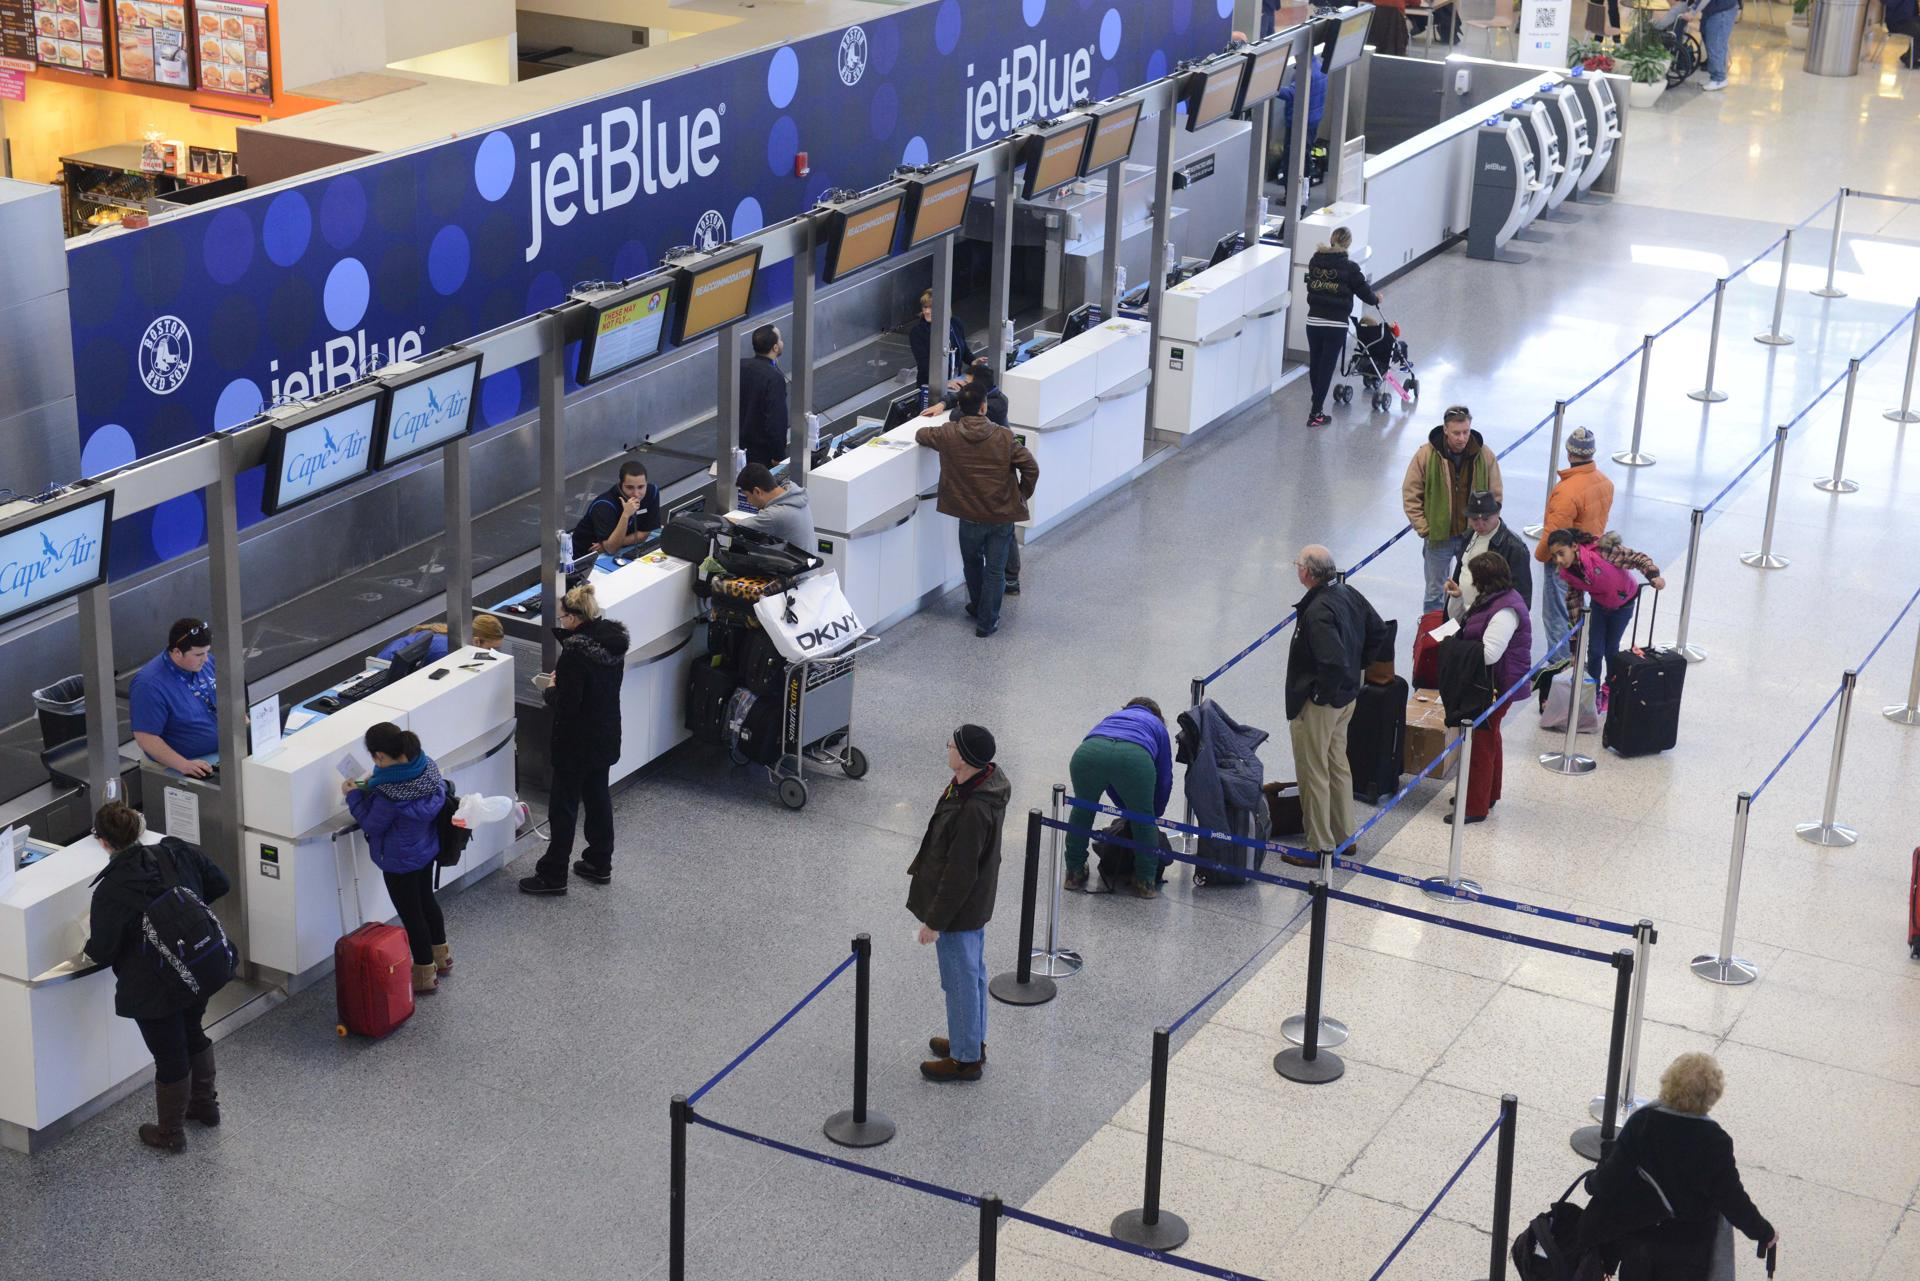 Passengers Waited To Check In At Jetblue's Kiosks At Logan Airport